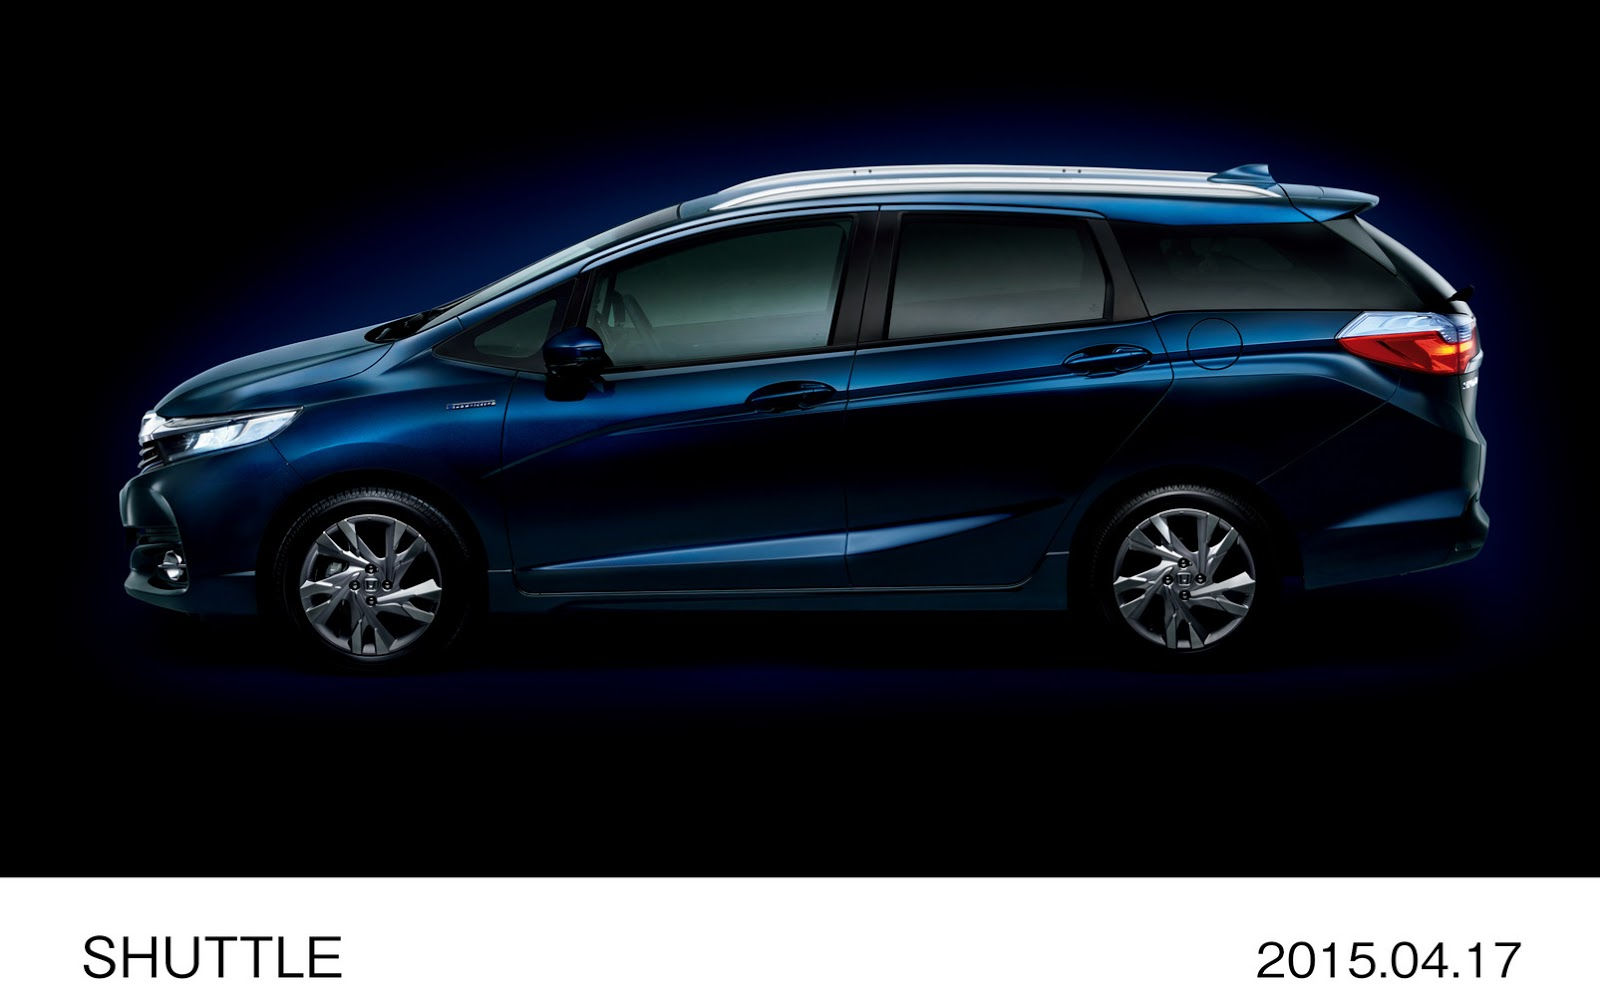 2015 Honda Shuttle Revealed in Japan: The Fit's Wagon ...